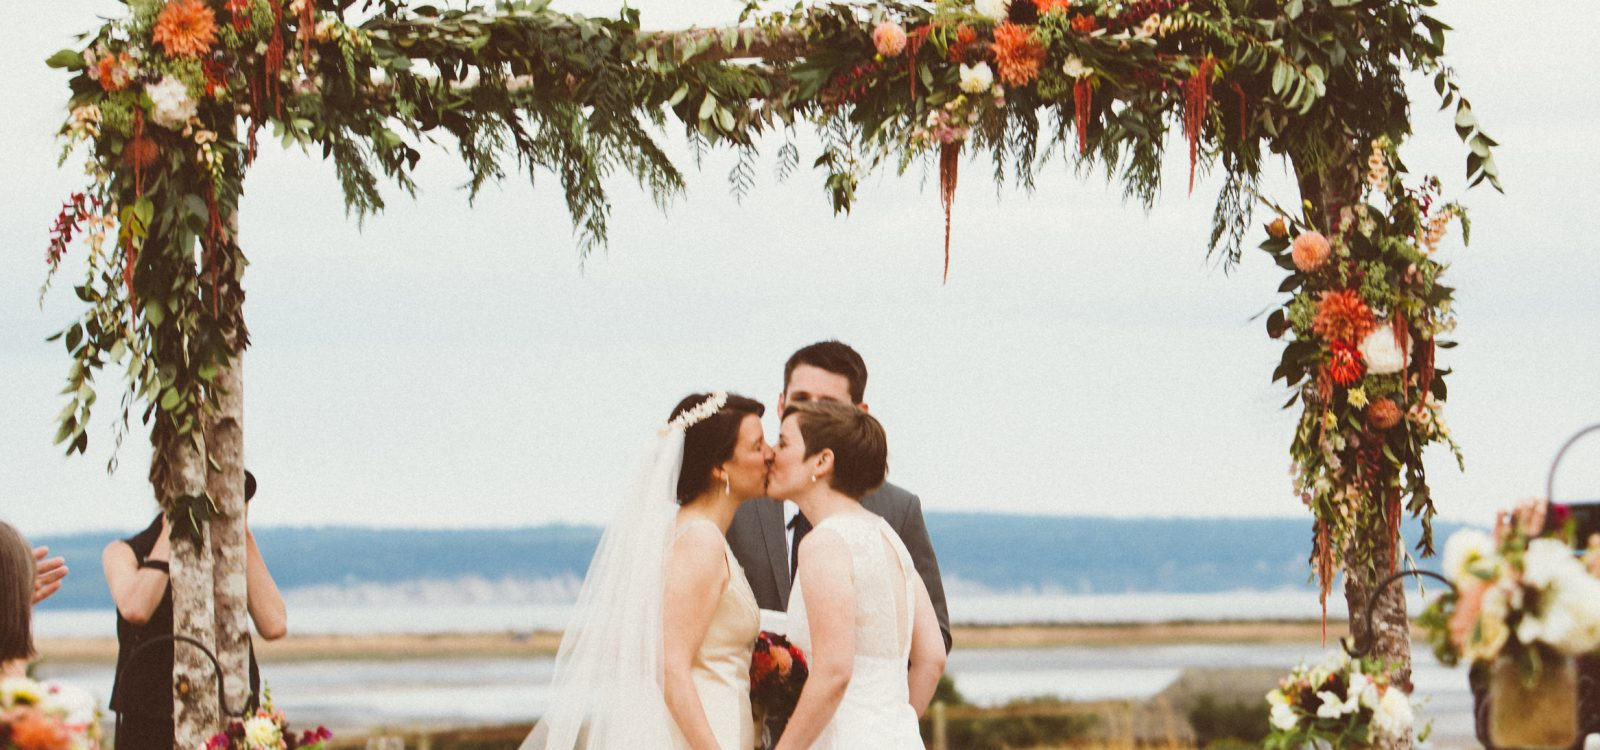 wedding arbor for rent wedding arbor Wedding Arbor For Rent